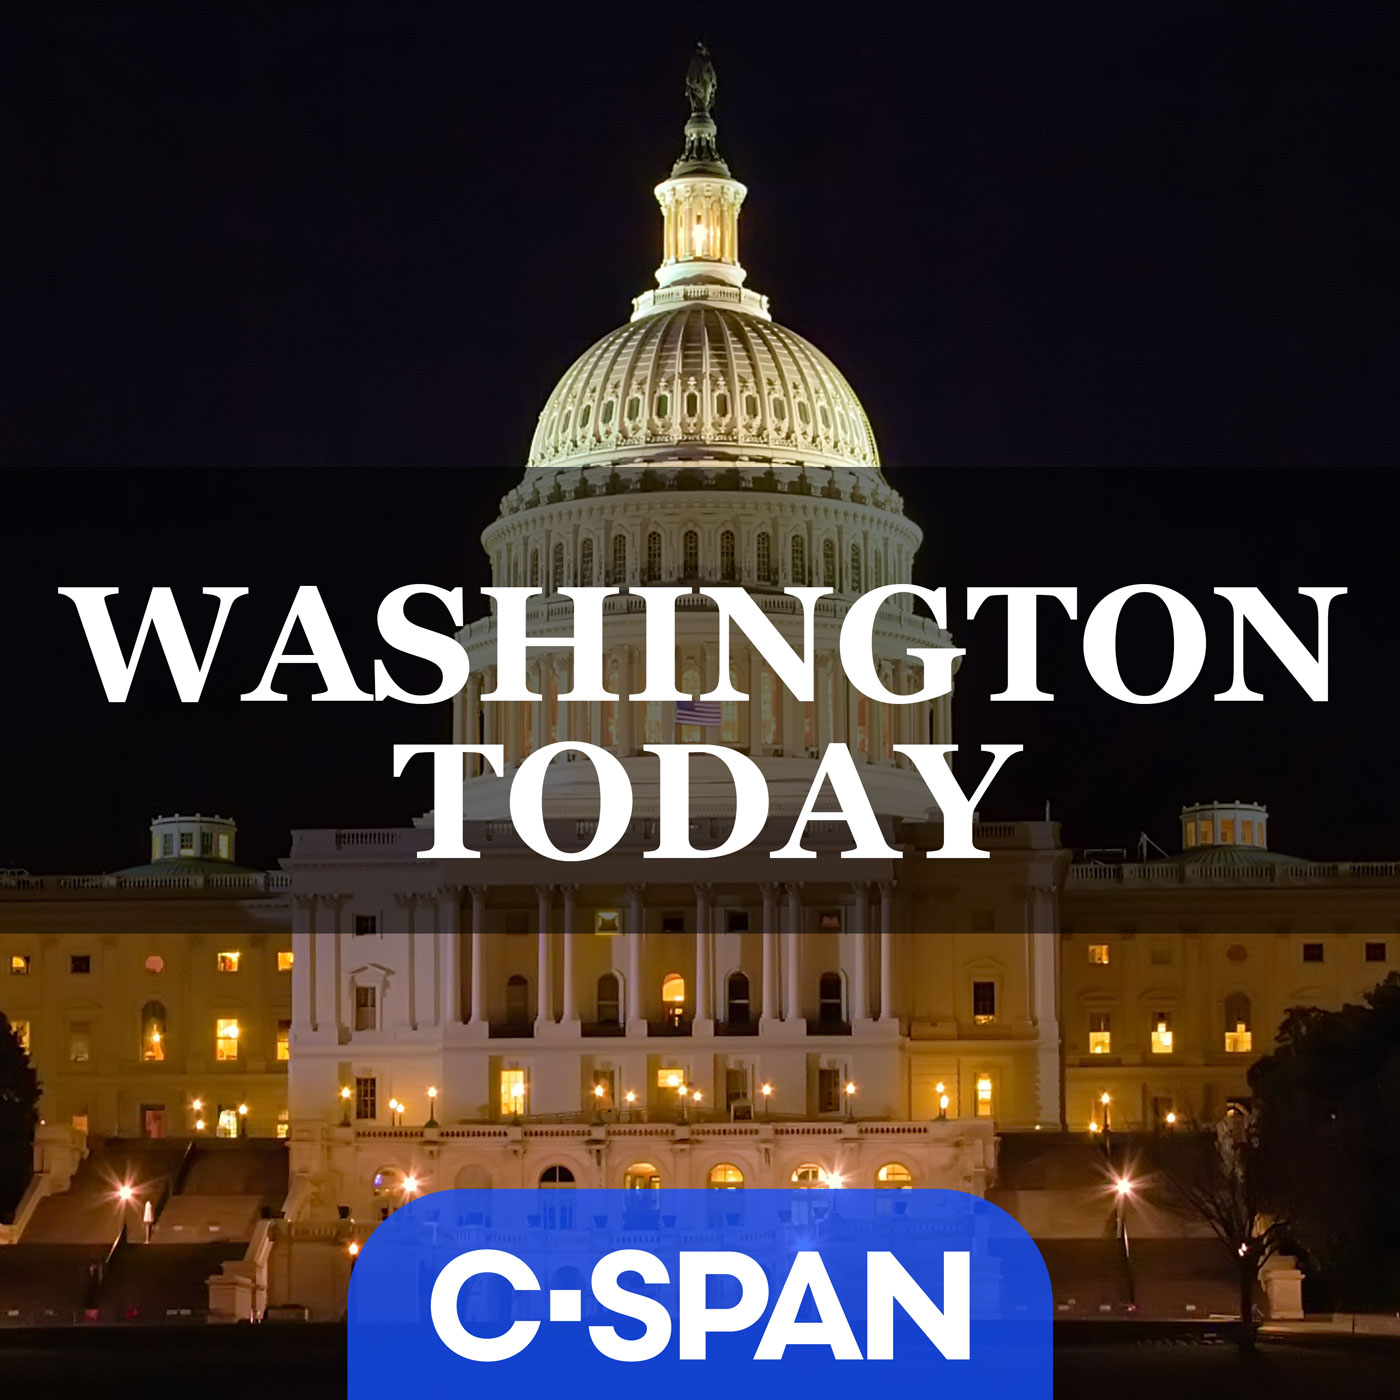 C-SPAN Radio - Washington Today